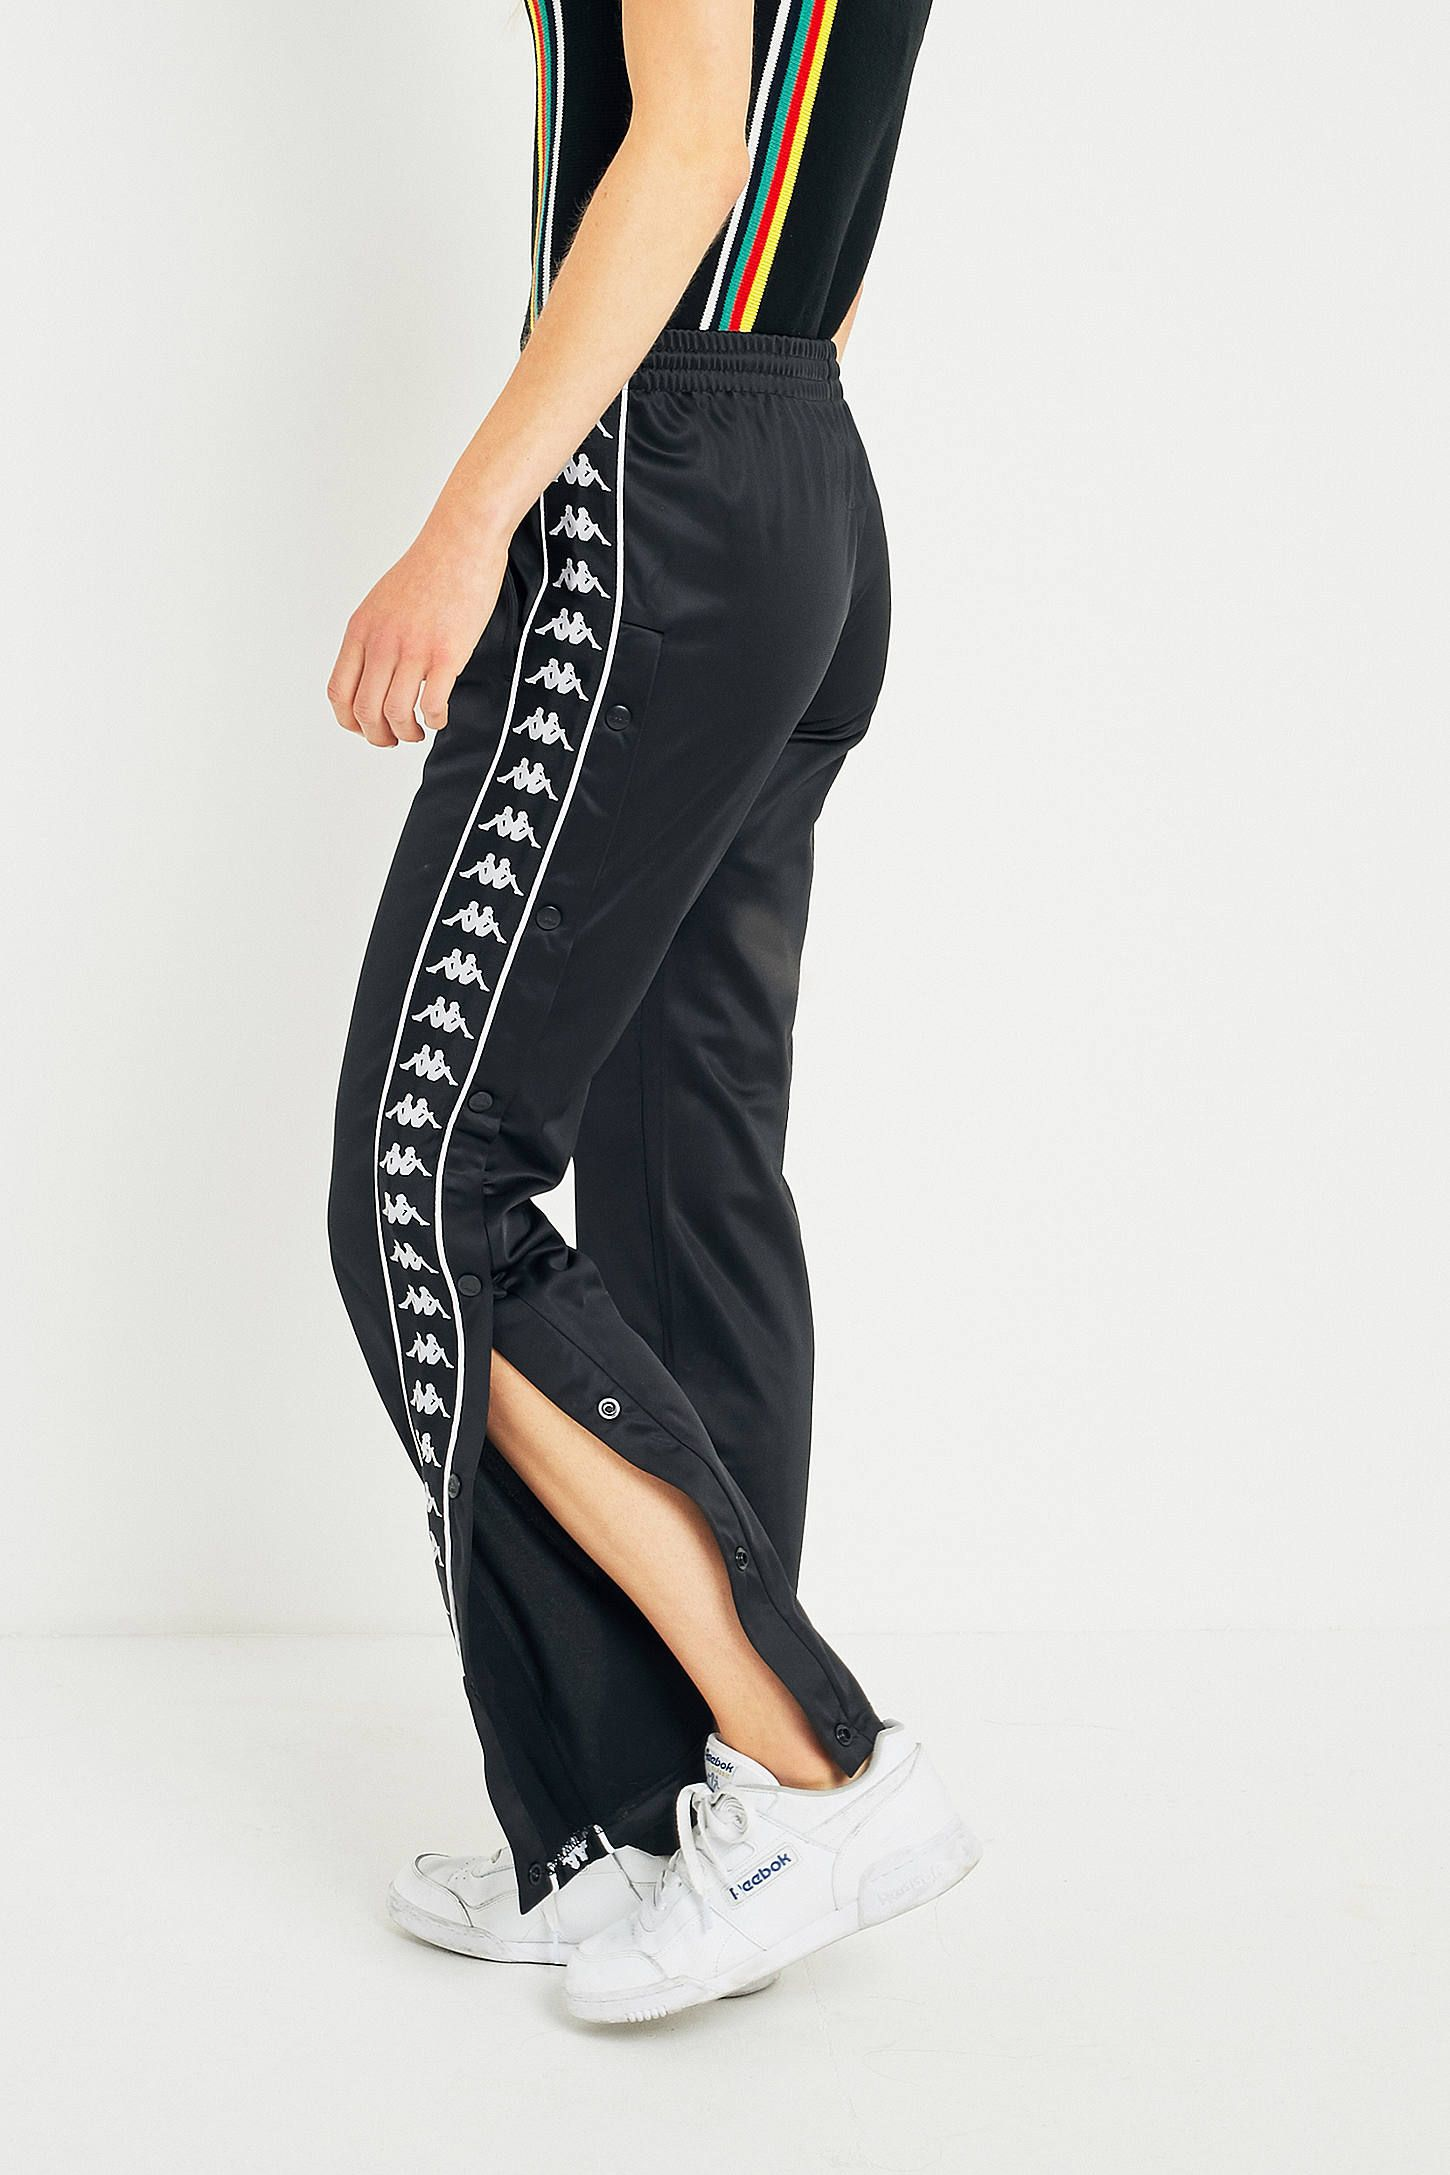 Kappa Black Taping Popper Track Pants | outfits in 2019